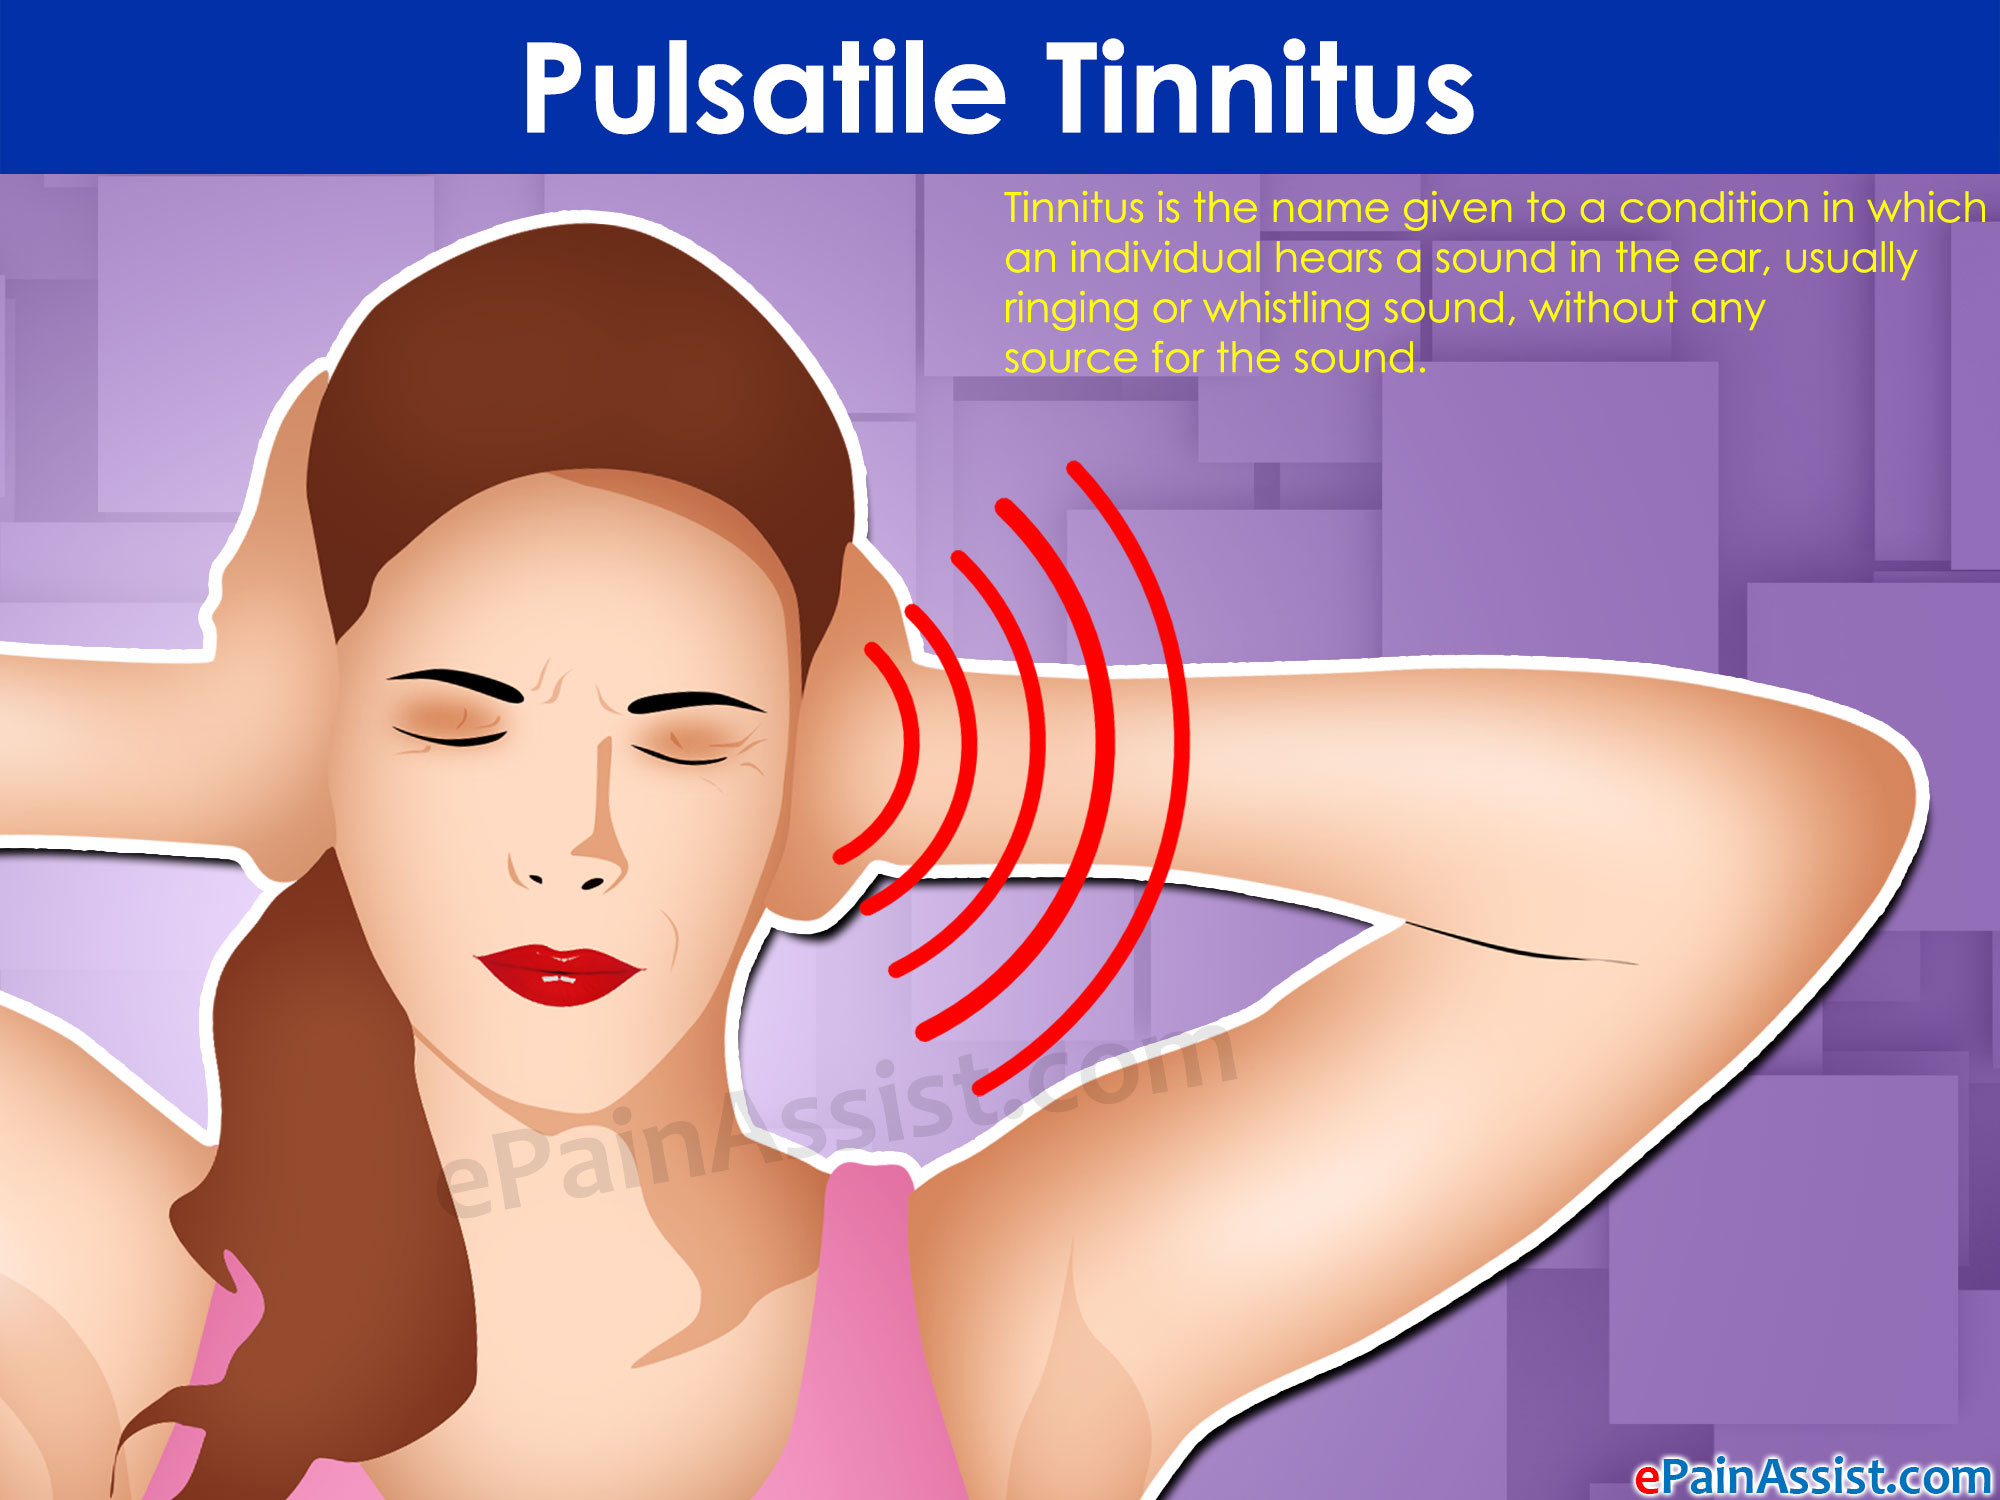 The cause of pulsatile tinnitus